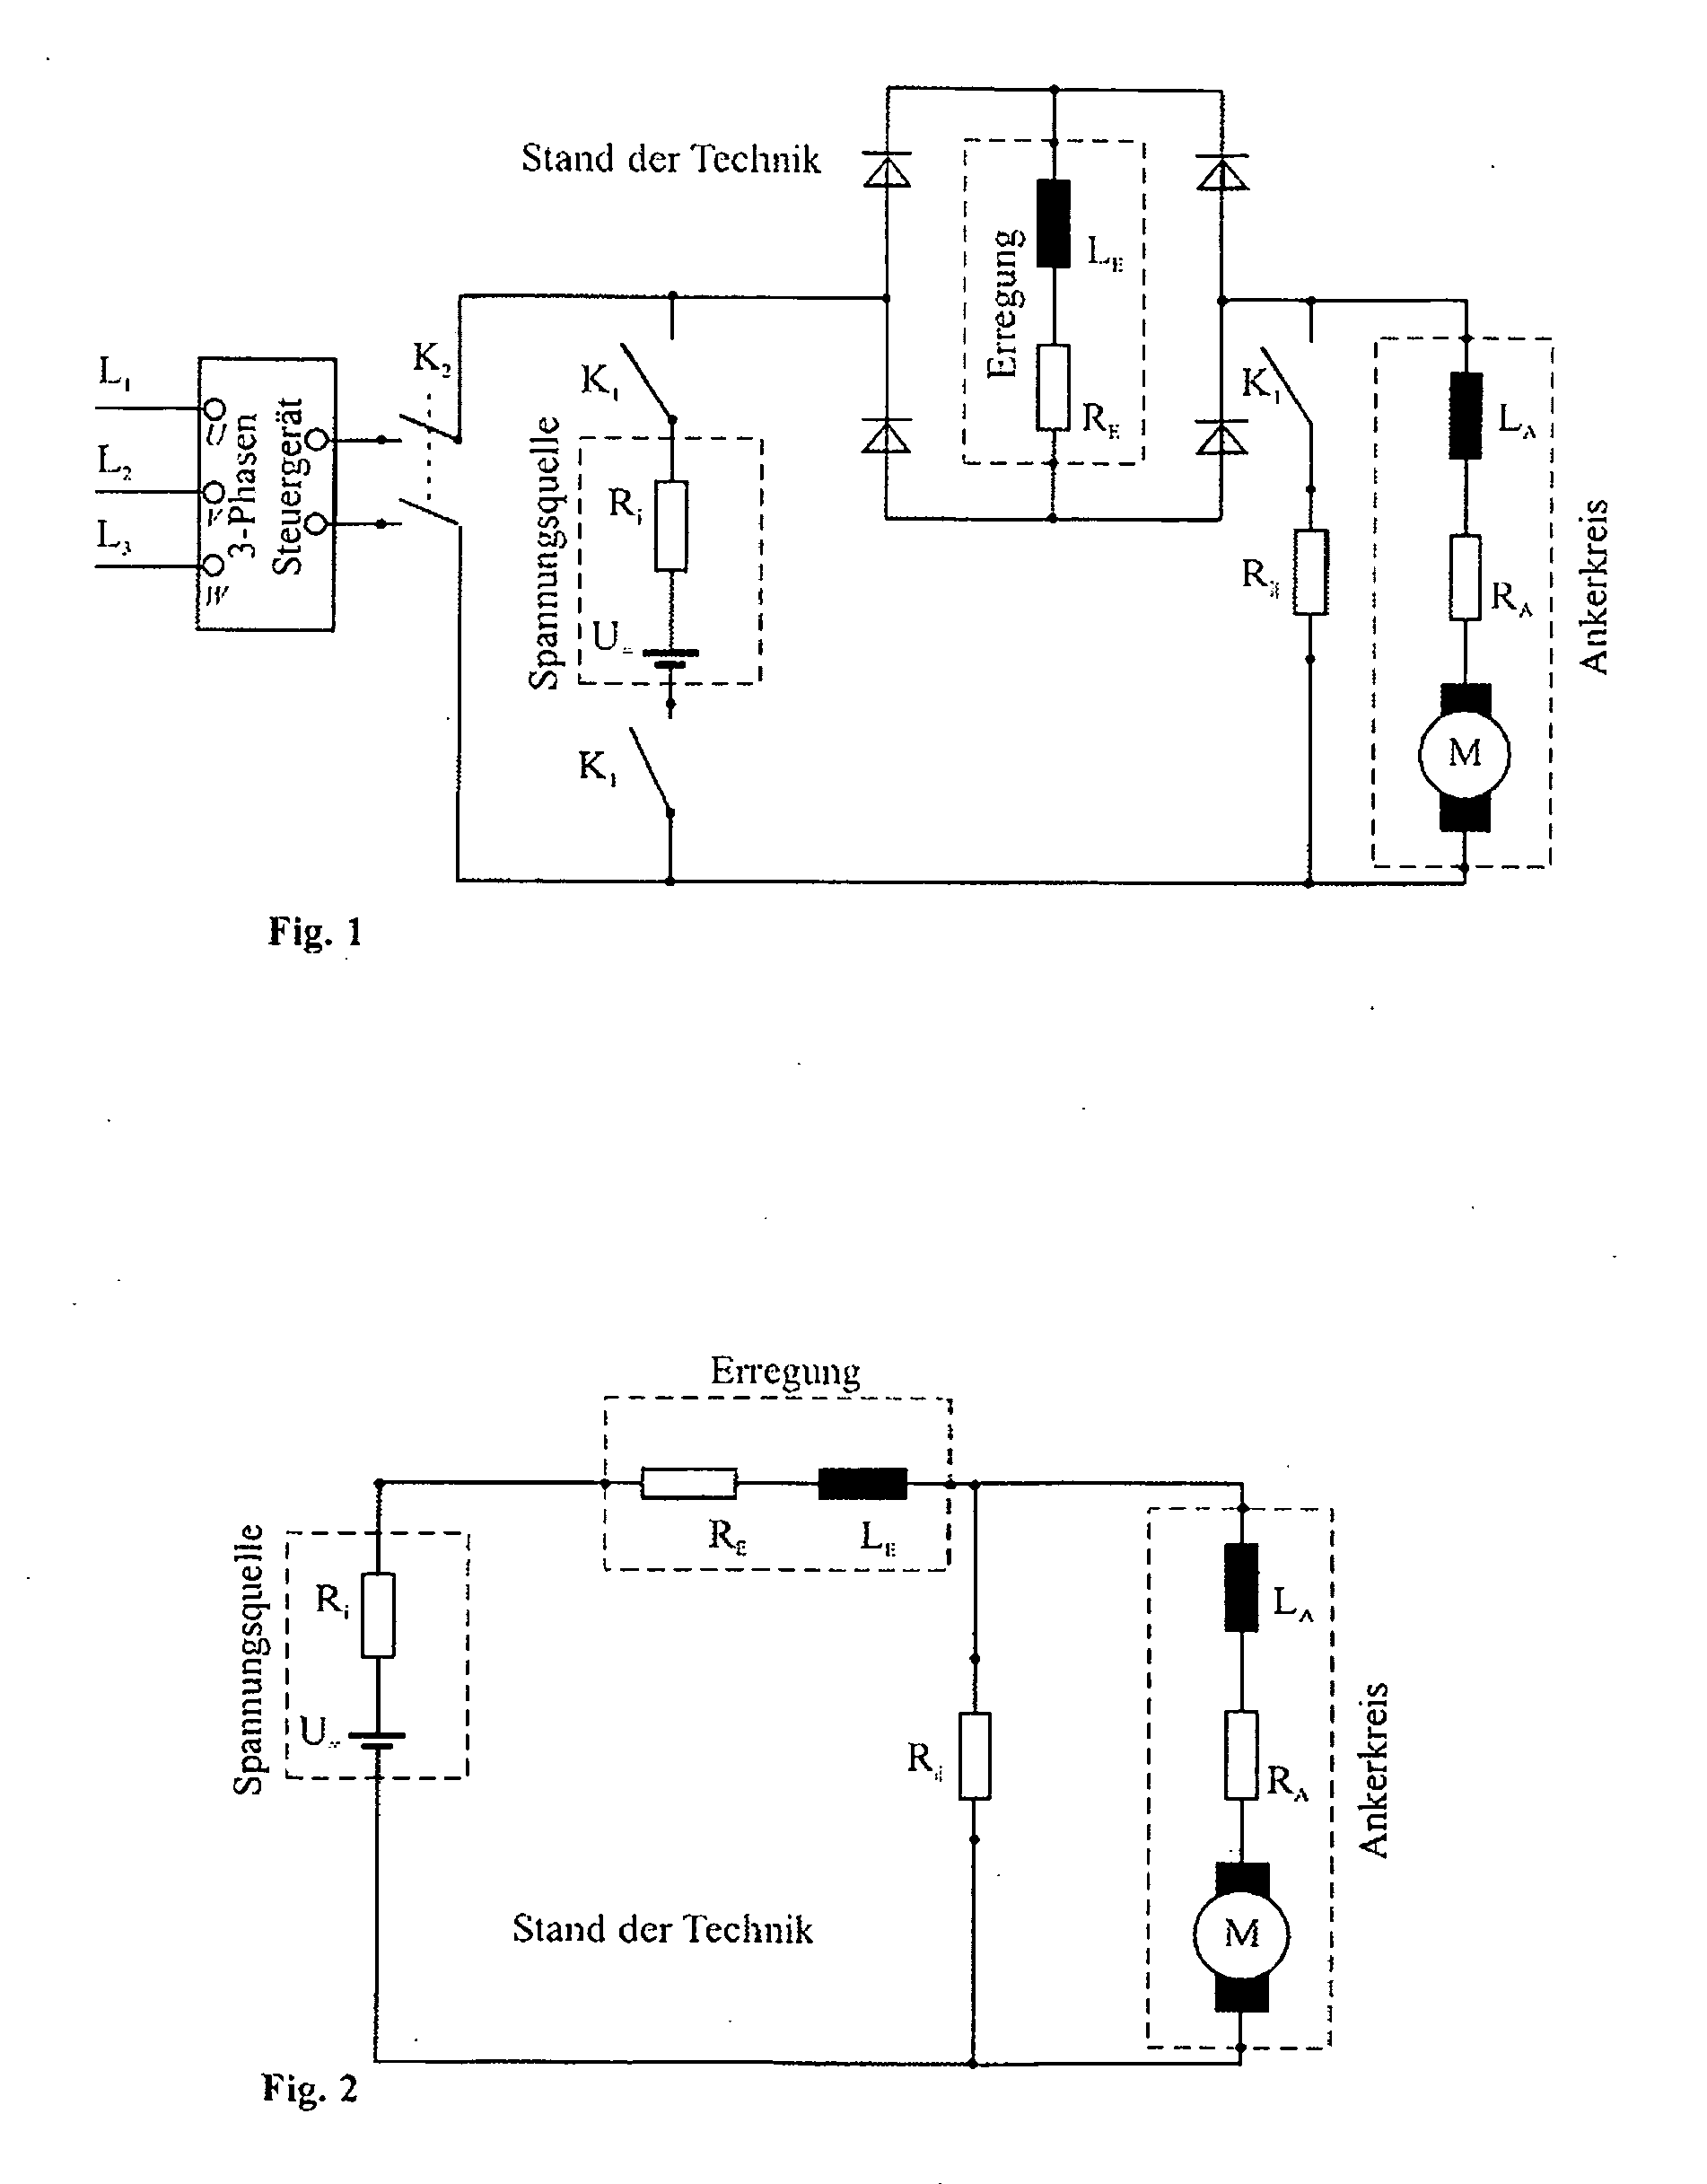 european patent application no 09809138.2